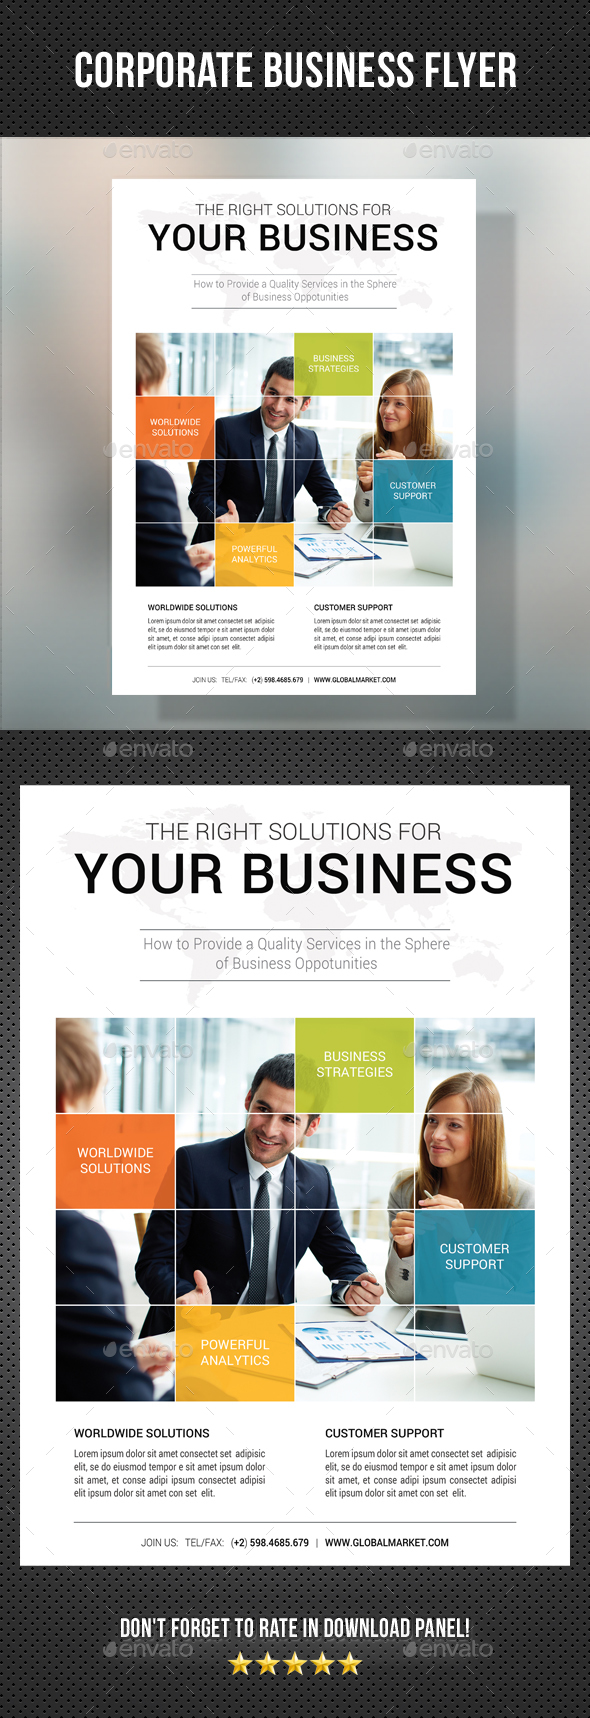 Corporate Business Flyer 18 - Corporate Flyers